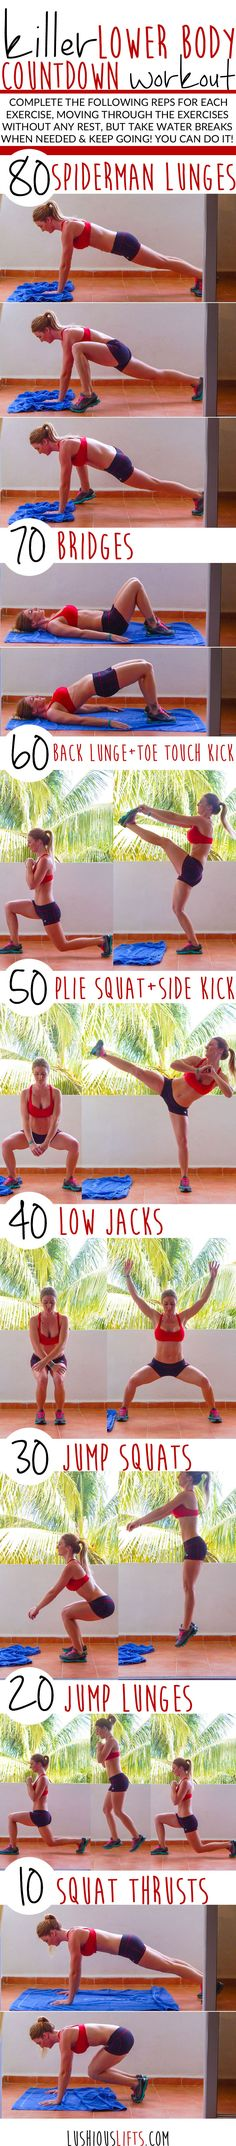 "Killer Lower Body Countdown Workout || <a href=""http://lushiousLIFTS.com"" rel=""nofollow"" target=""_blank"">lushiousLIFTS.com</a>"